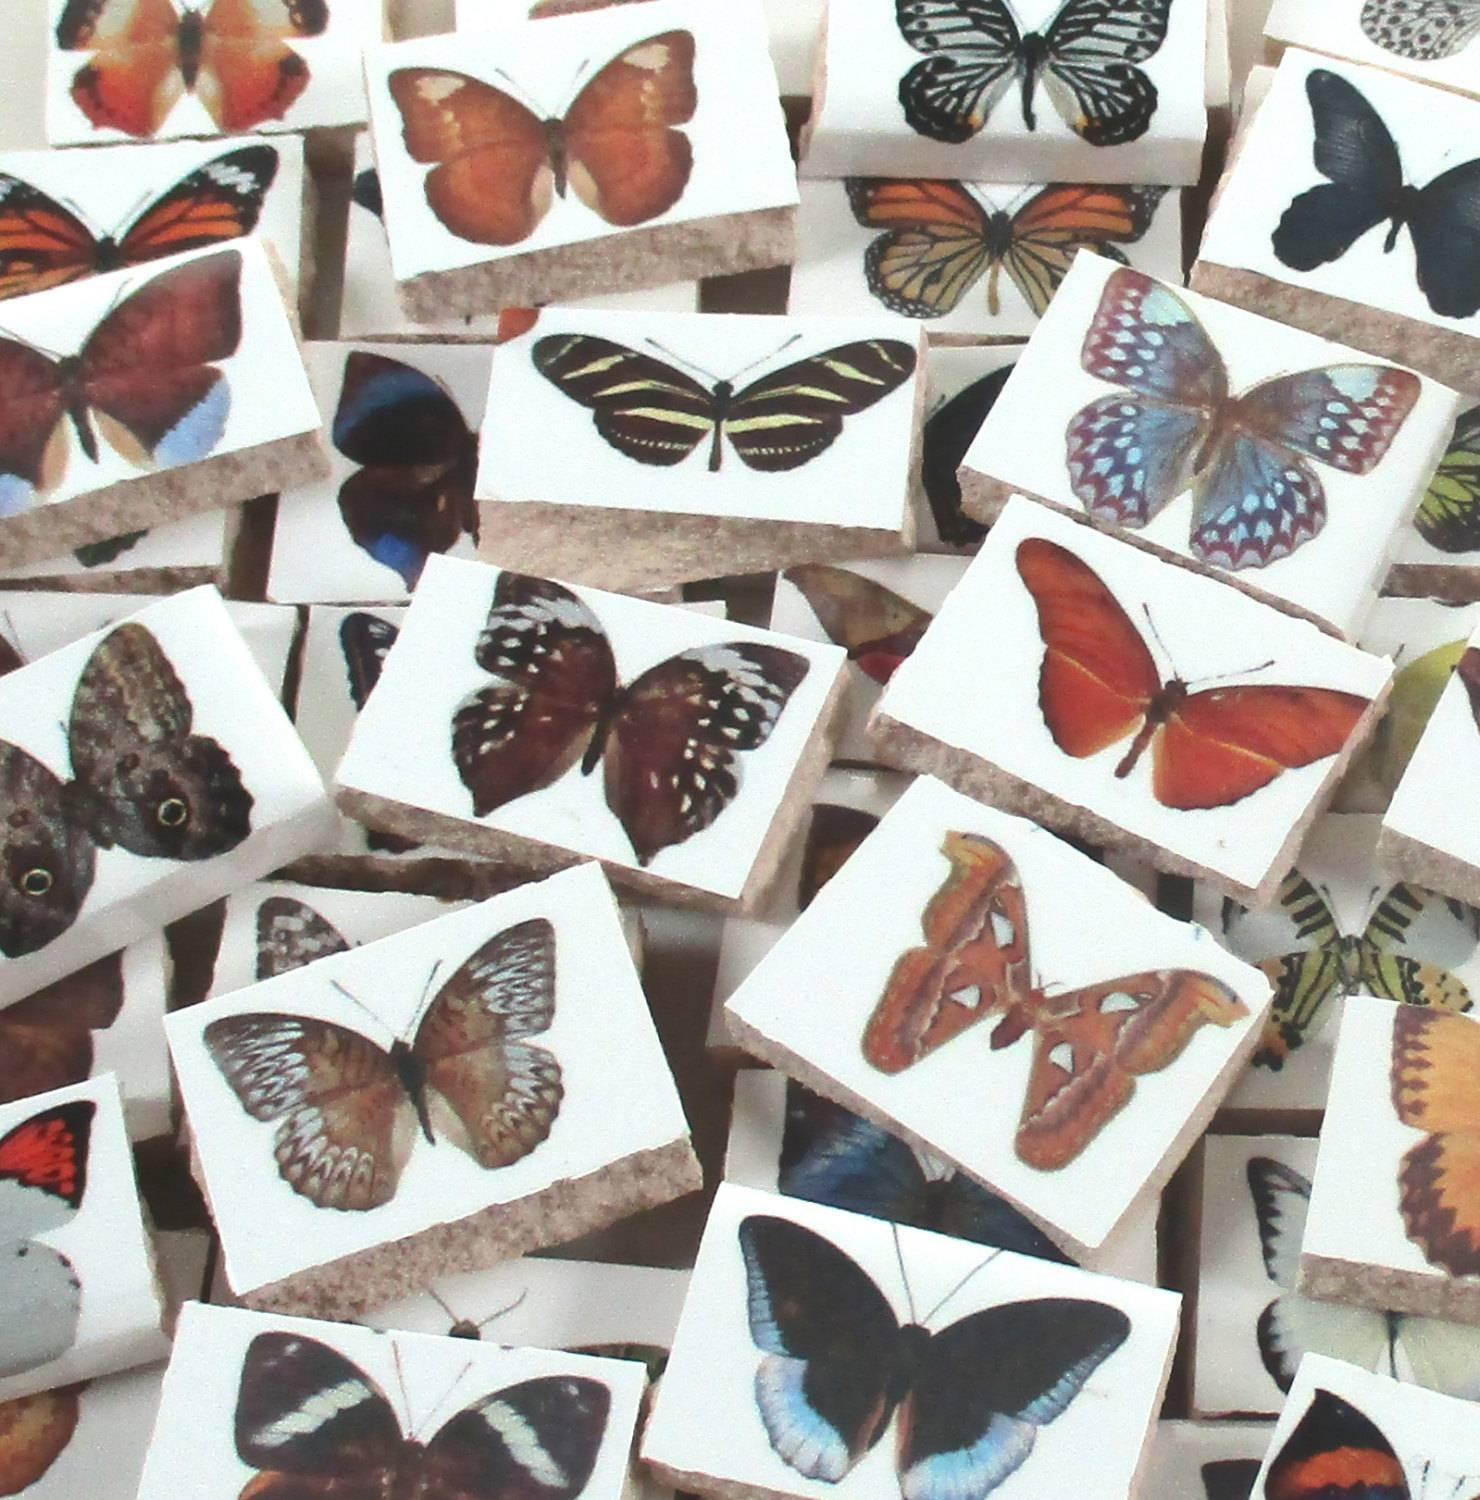 Ceramic Mosaic Tiles – Butterfly And Moth – Butterflies Tile Regarding Newest Ceramic Butterfly Wall Art (View 21 of 30)